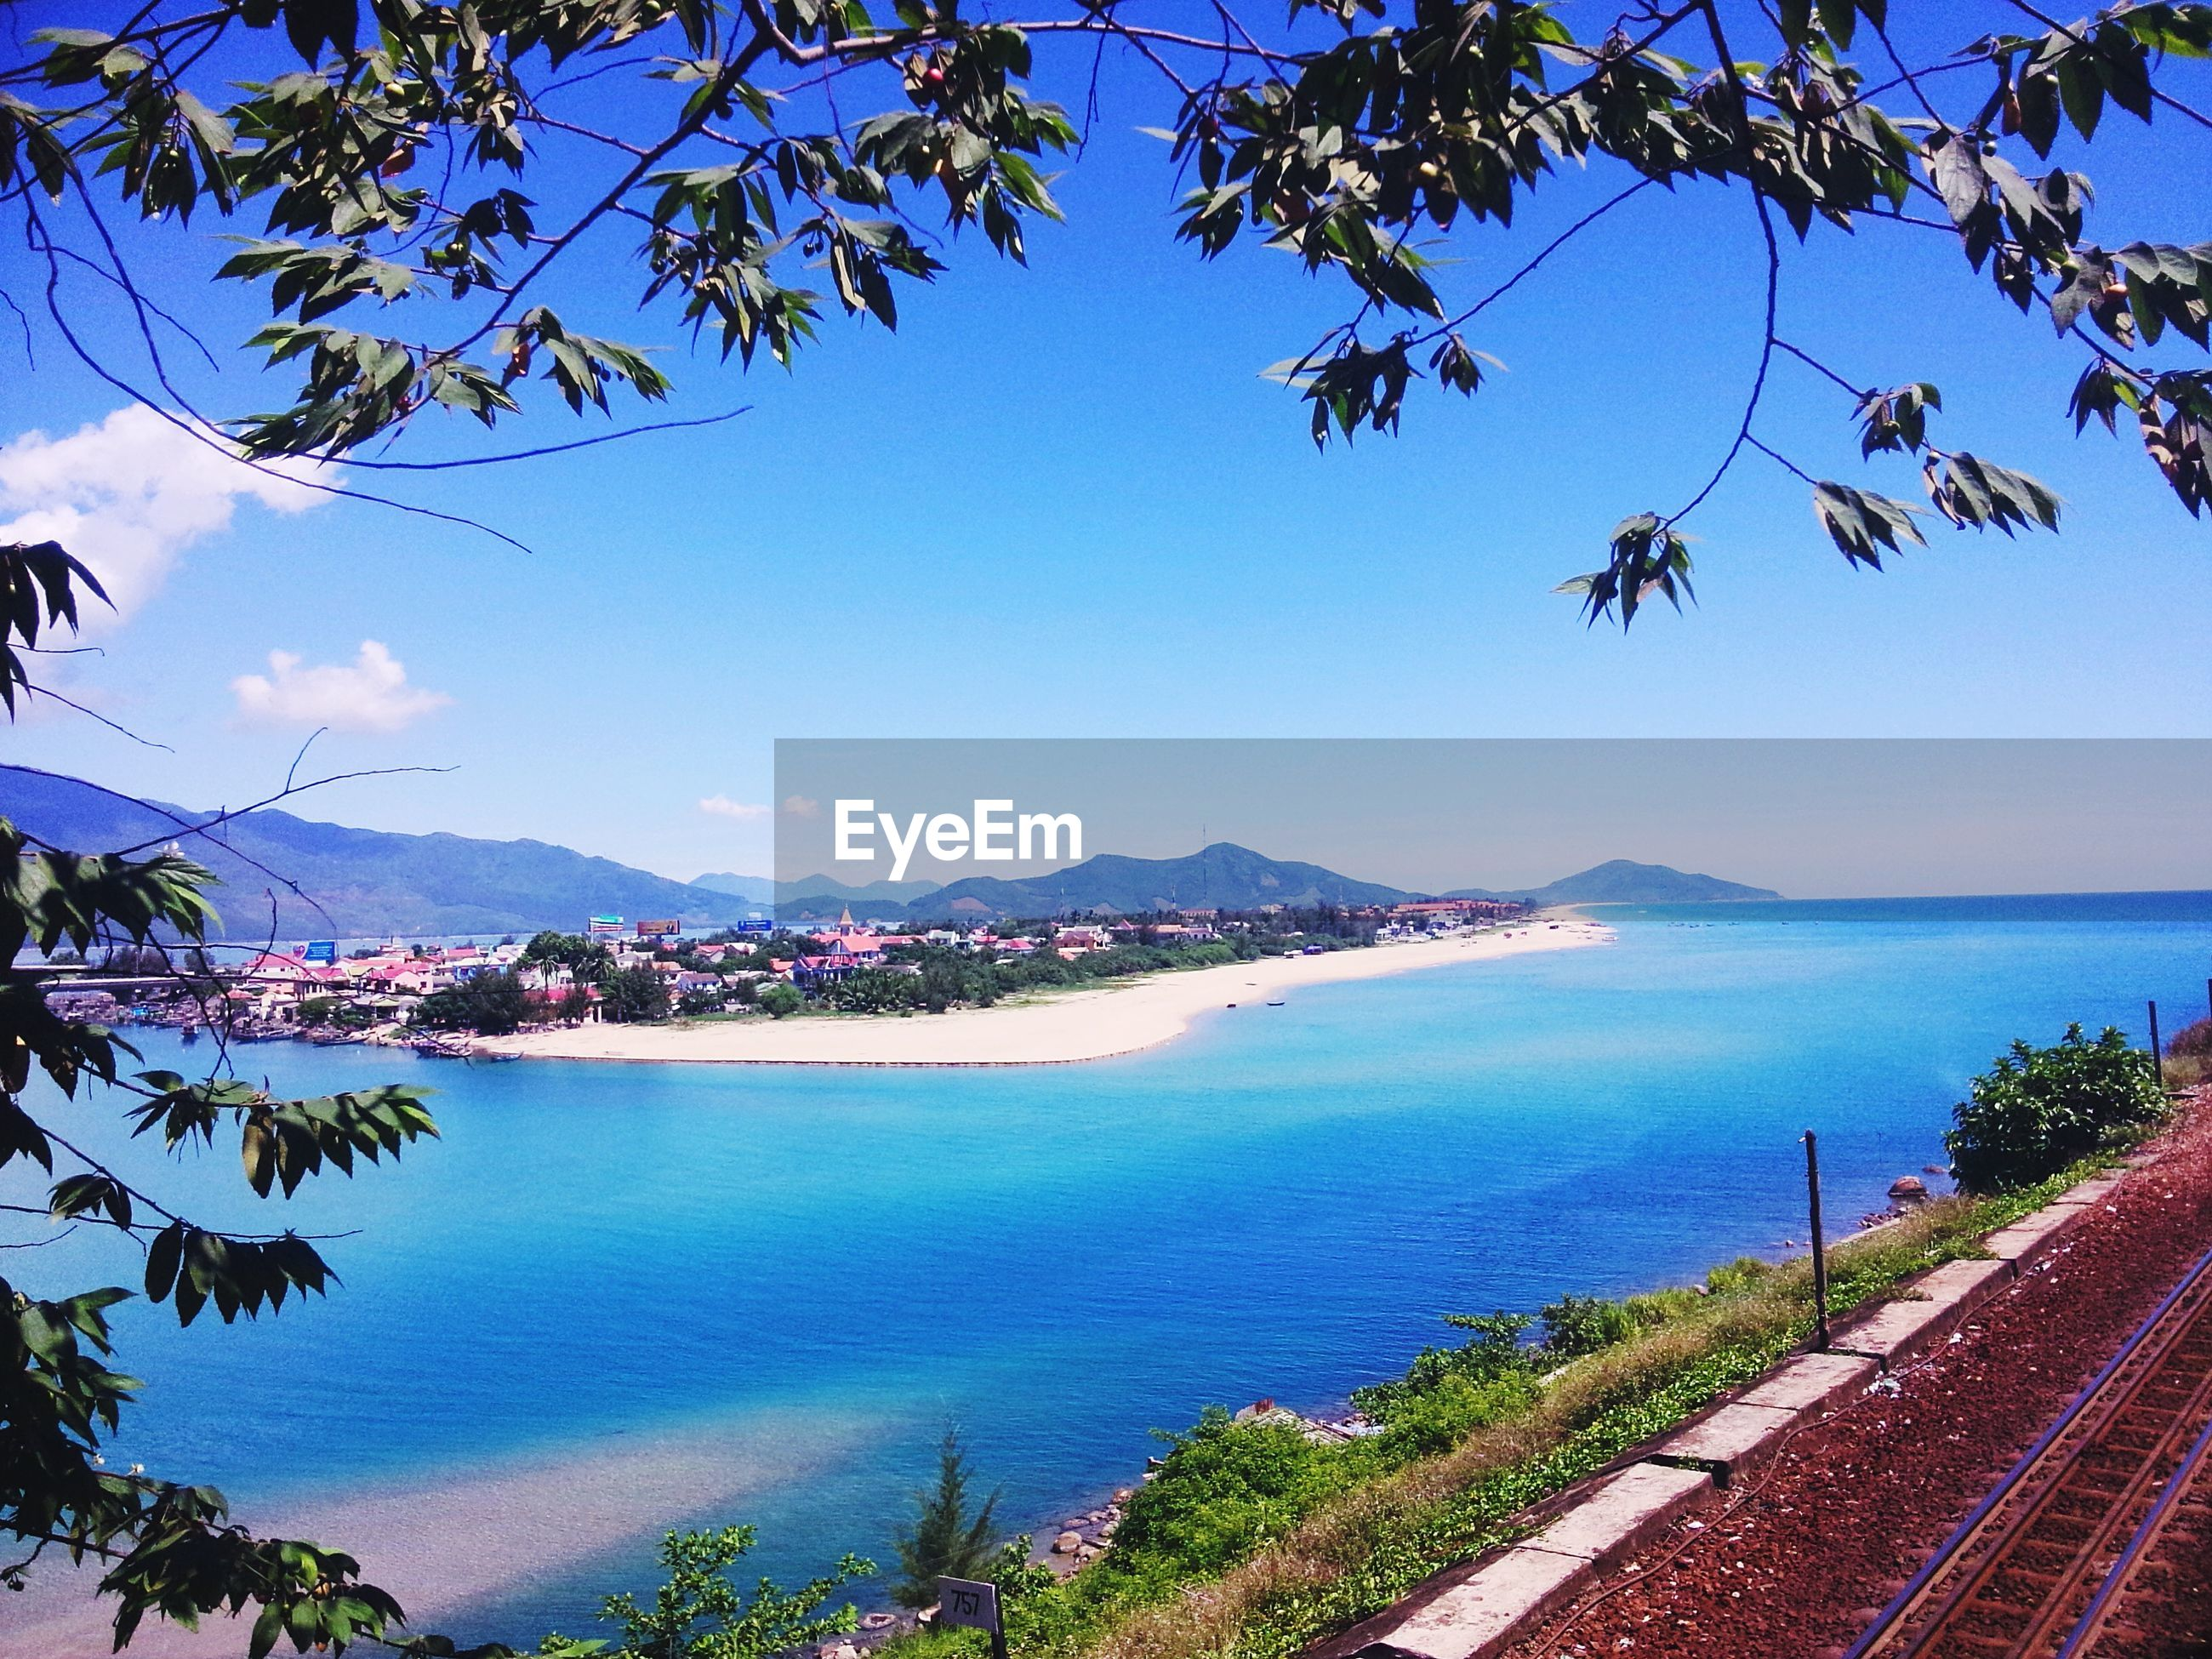 water, sea, blue, mountain, tree, tranquil scene, scenics, tranquility, travel destinations, sky, mountain range, tourism, distant, city, clear sky, beauty in nature, vacations, nature, seascape, day, town, outdoors, ocean, calm, majestic, coastline, non-urban scene, city life, natural landmark, solitude